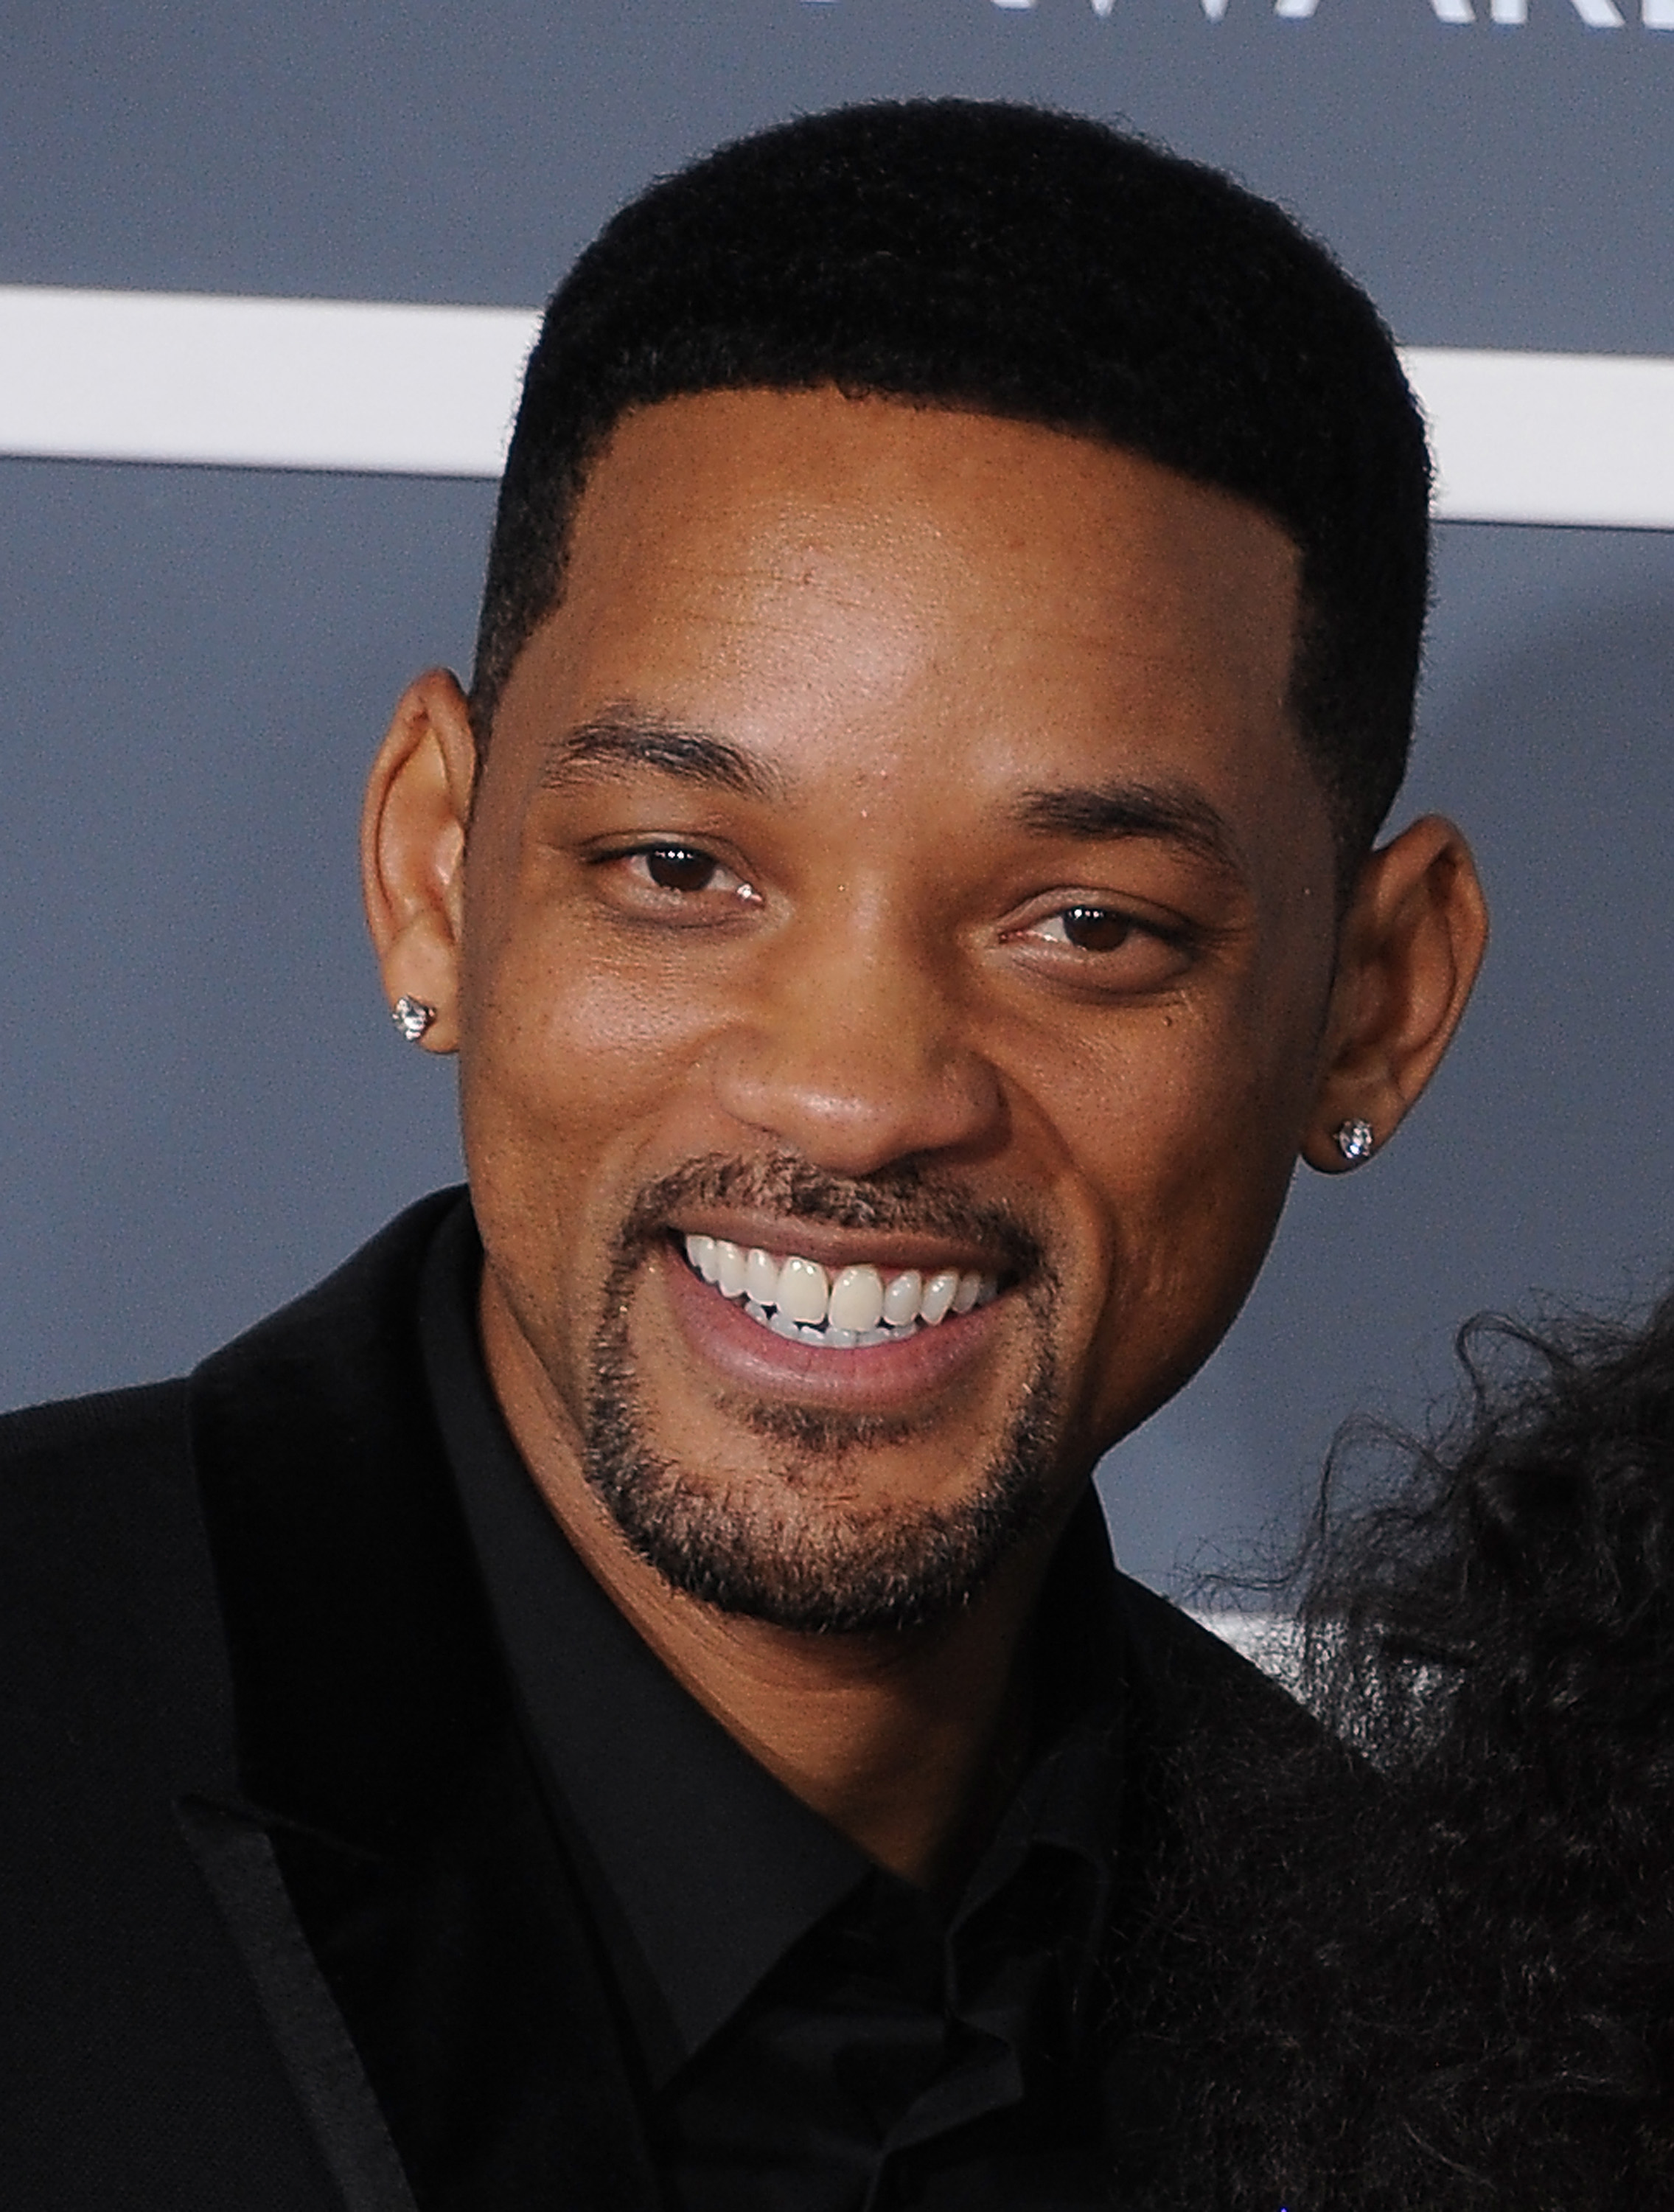 will smith Netflix original bright hits the screening service this week - the first reviews have landed and it doesn't bode well will smith's previous movie collateral beauty.